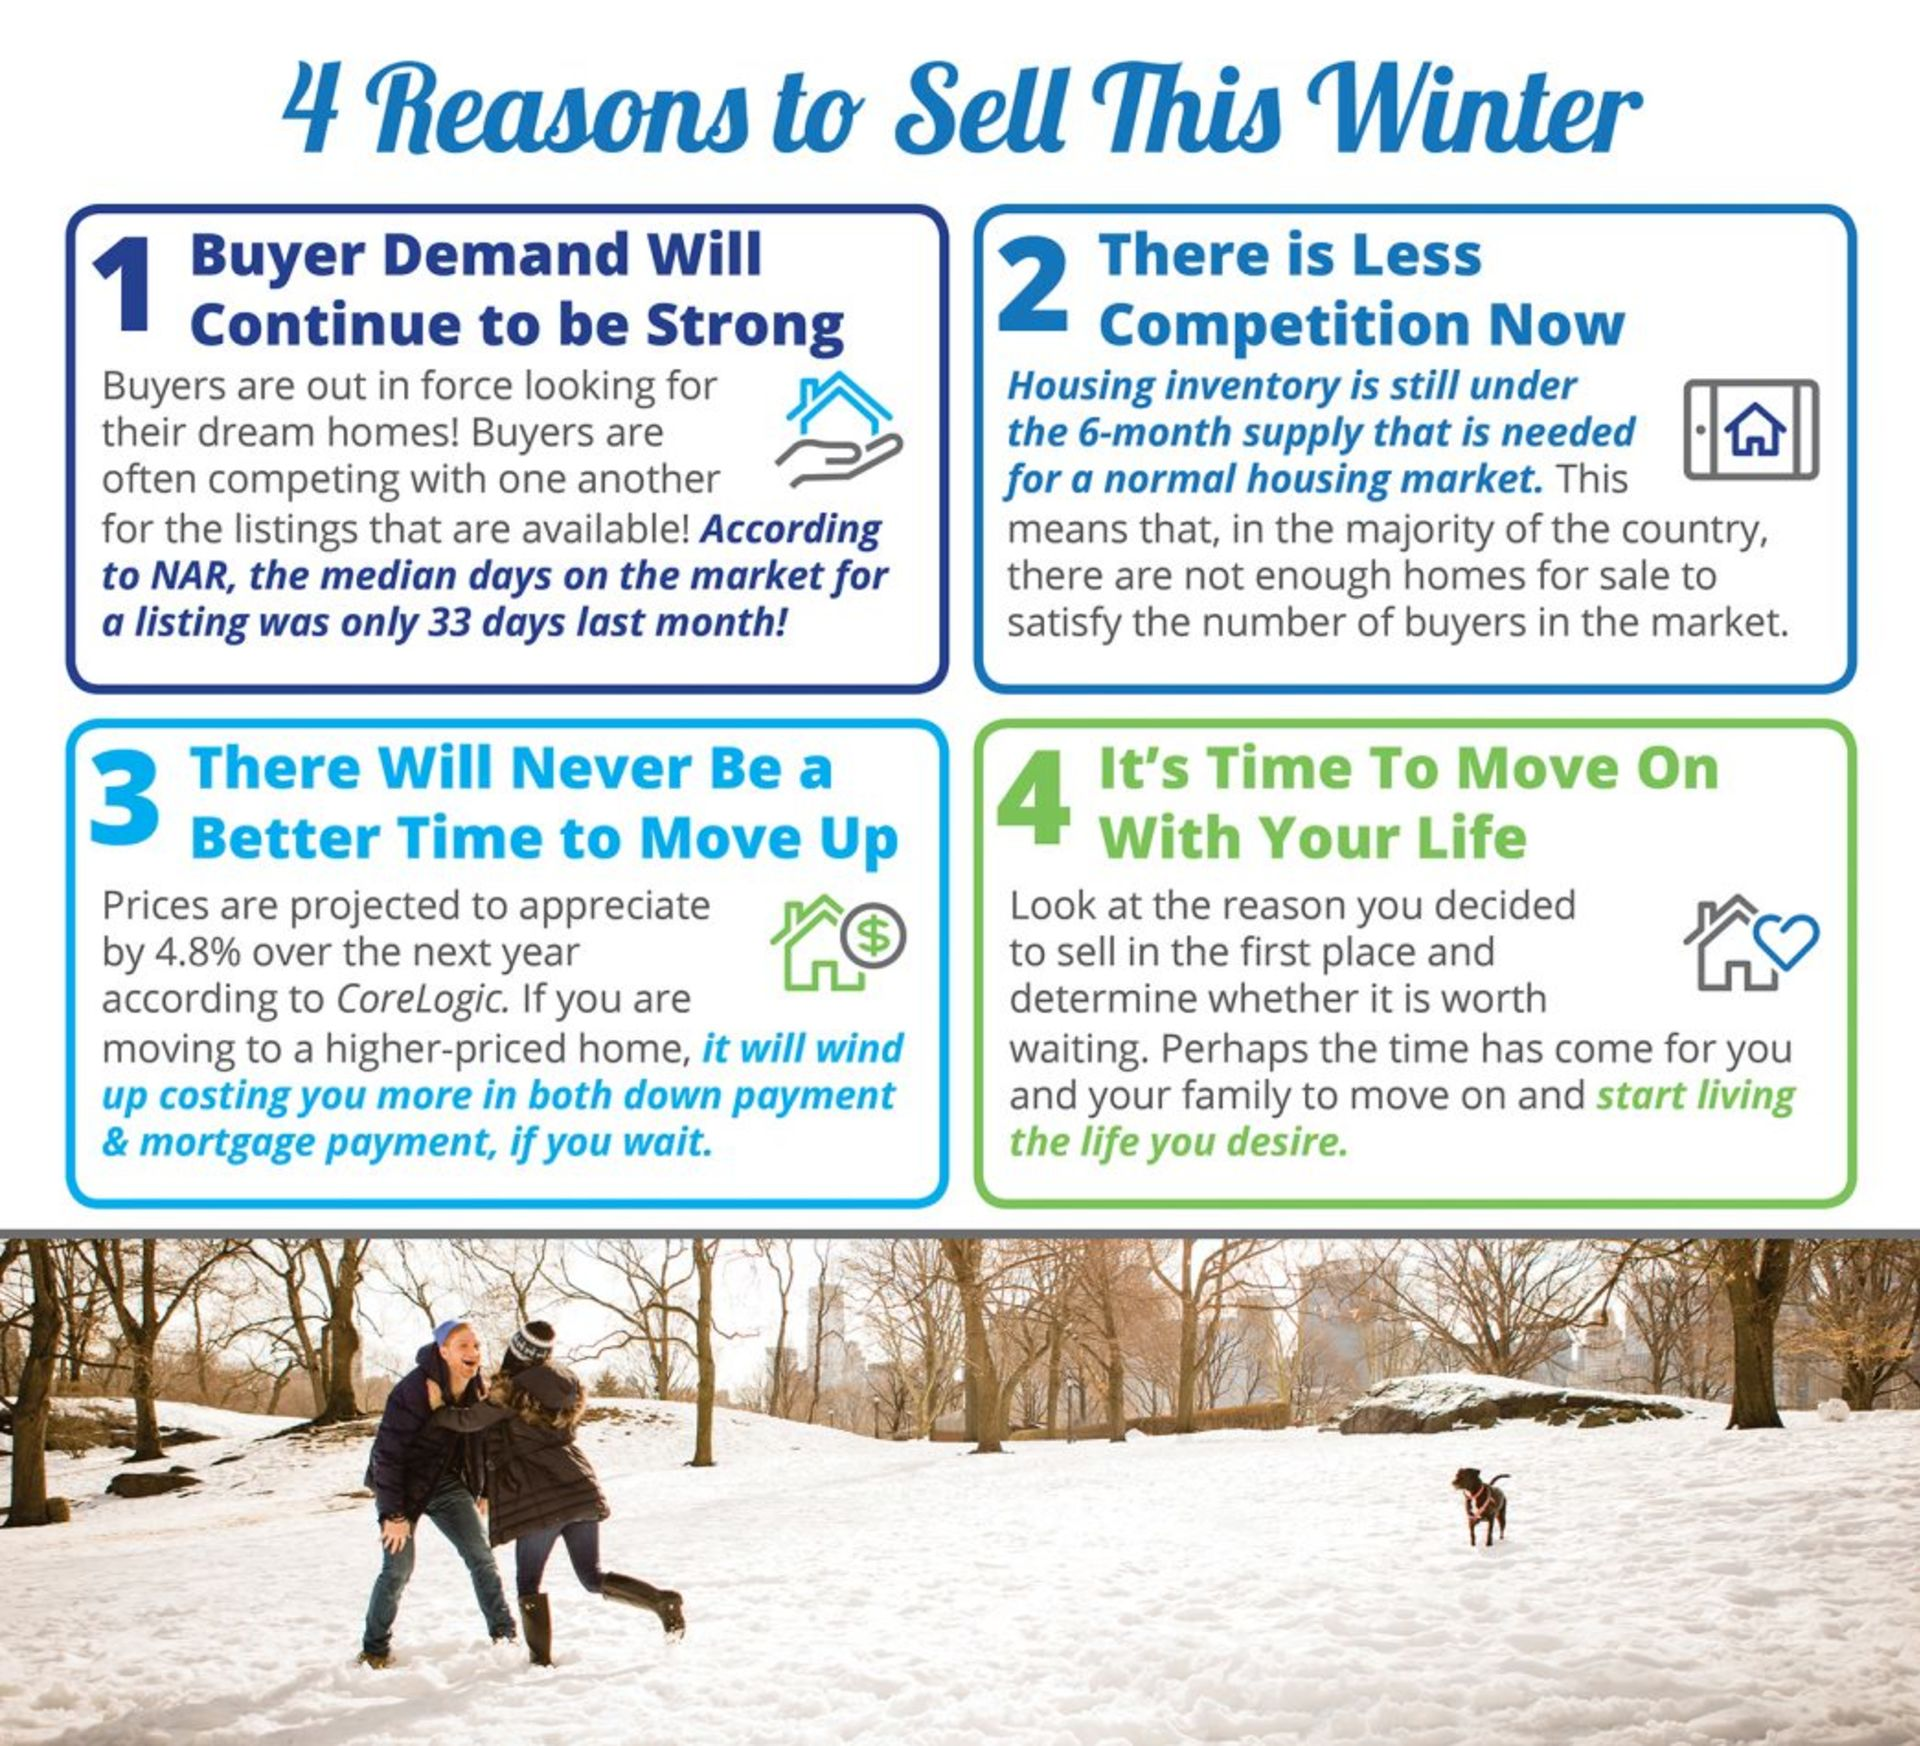 4 Reasons to Sell Your House This Winter [INFOGRAPHIC]